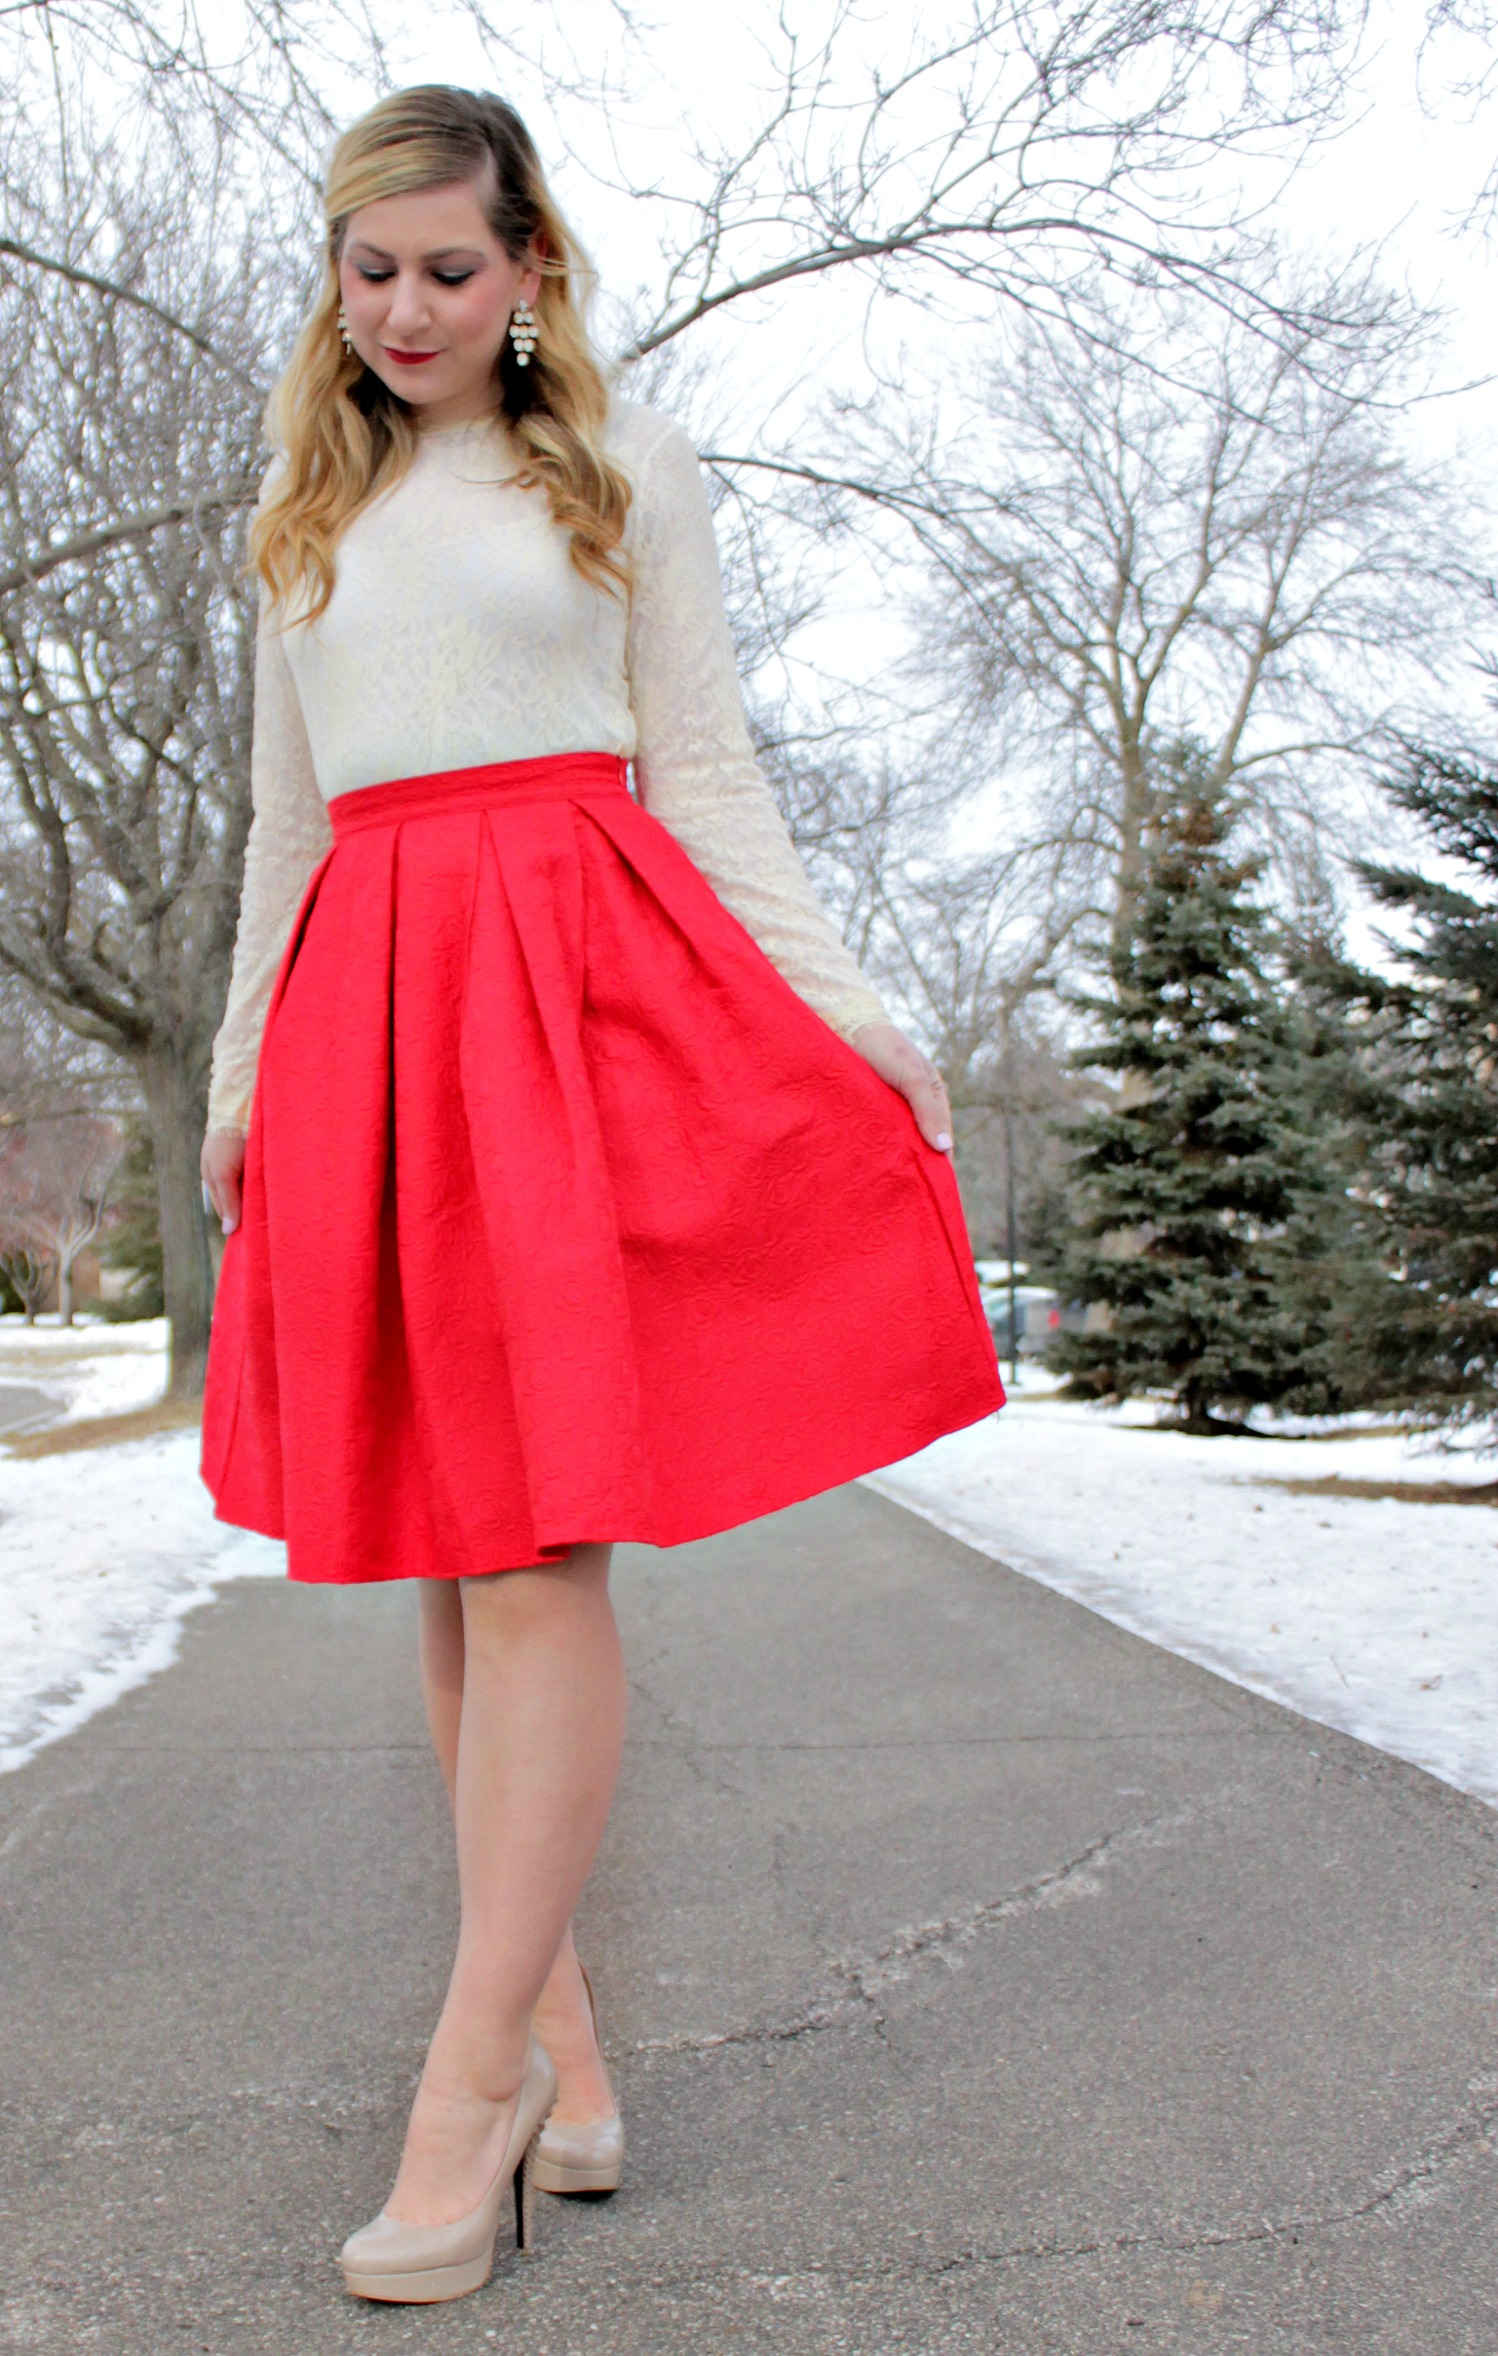 Ivory Lace Amp Red Pleated Skirt Valentine S Day Look